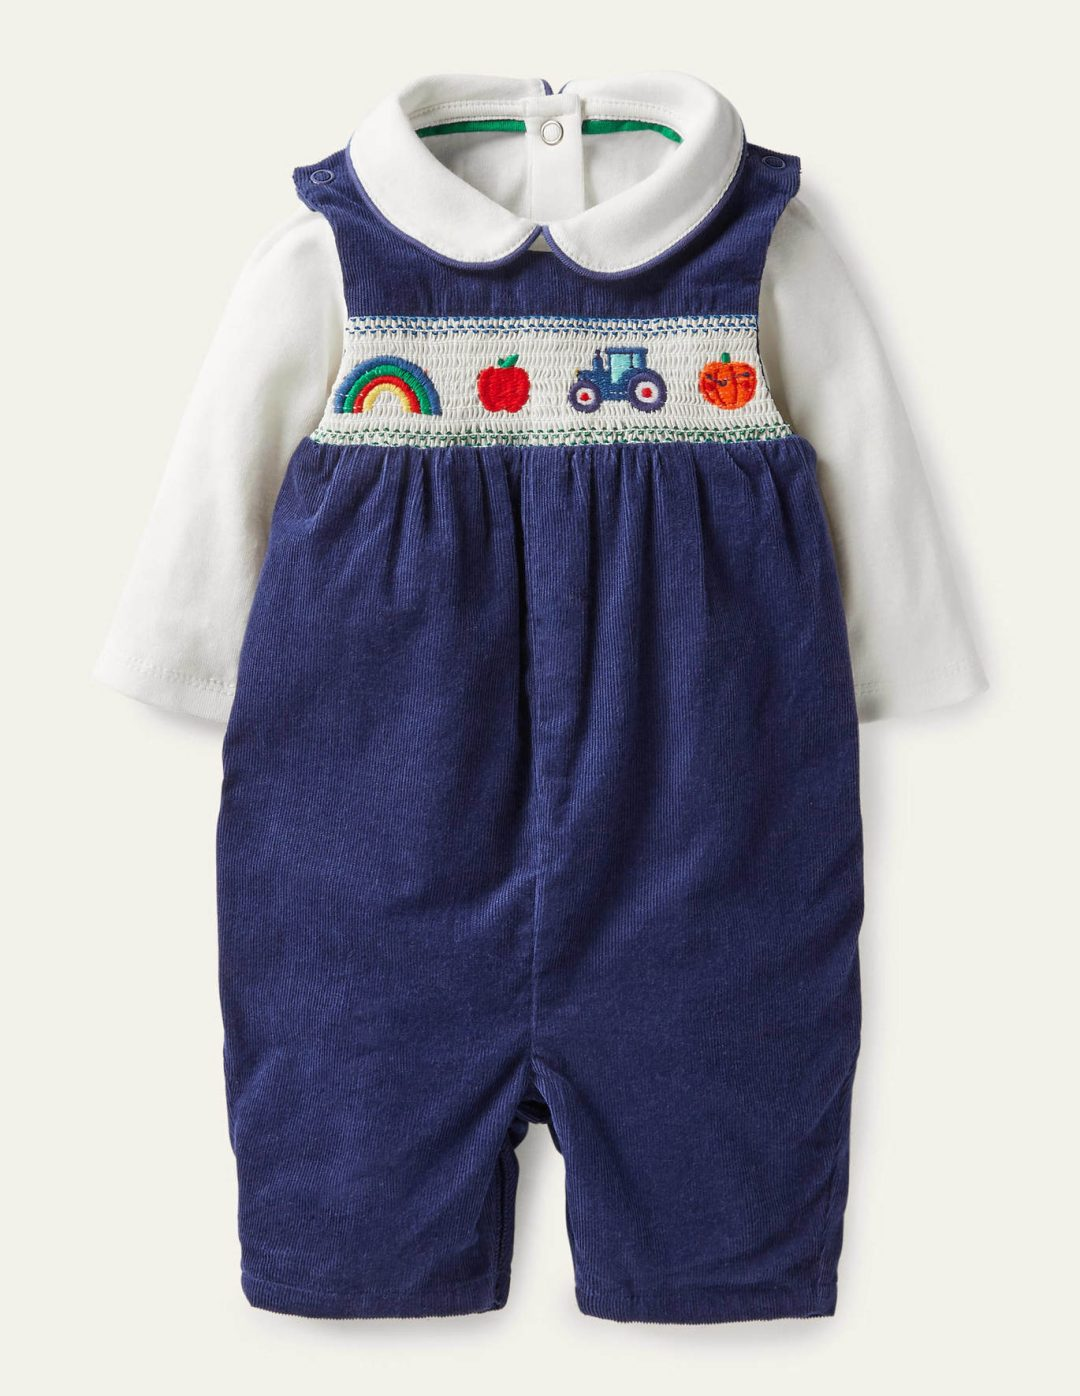 Toddler playsuit for baby boys